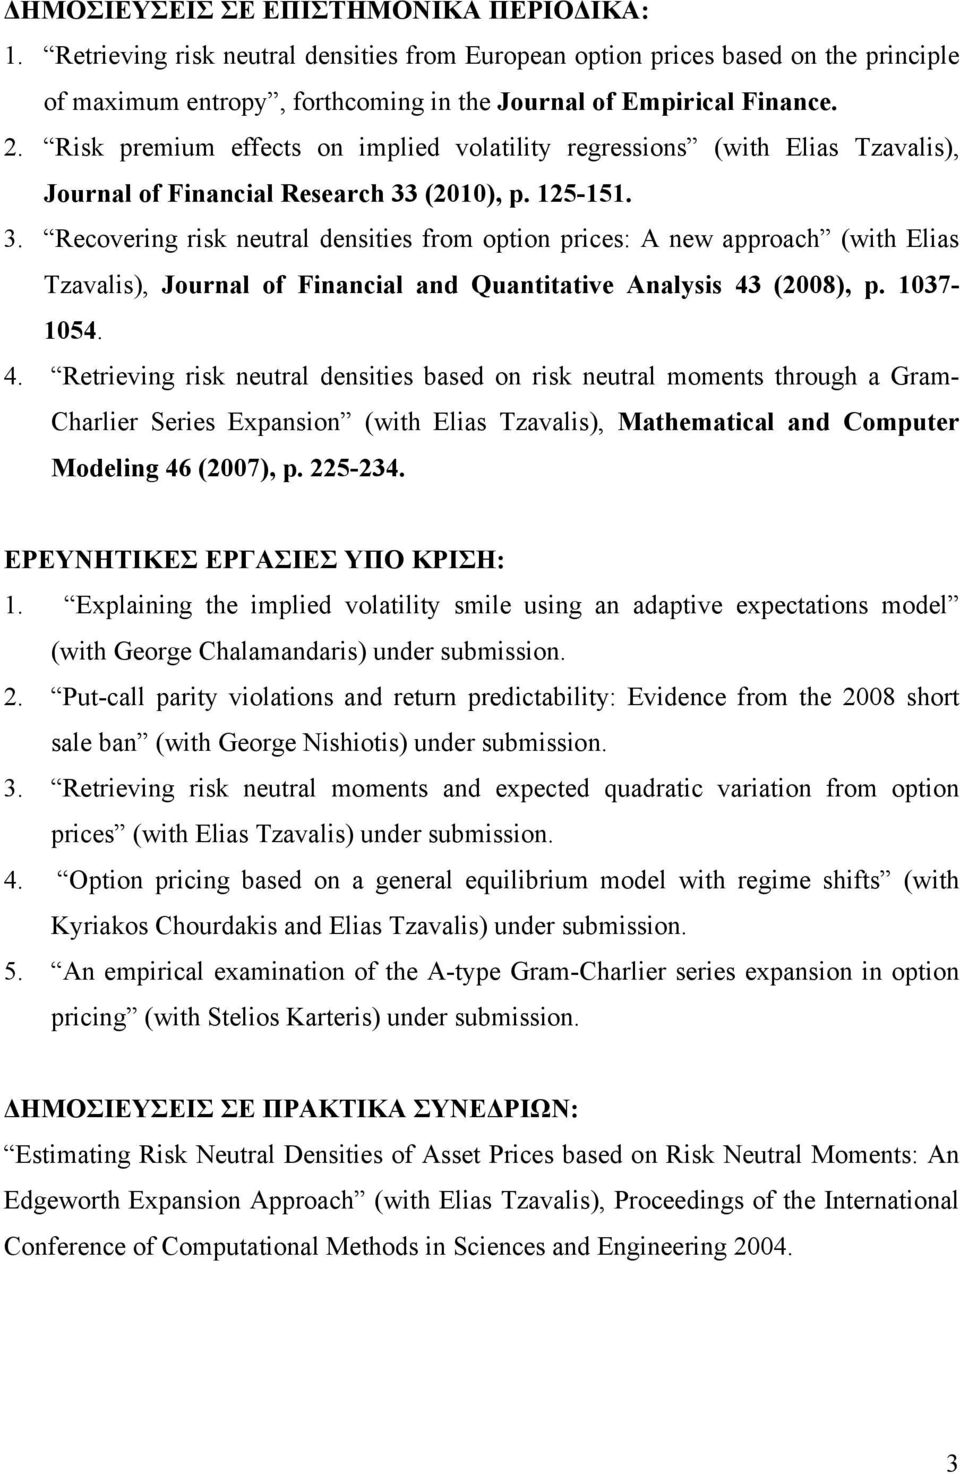 (2010), p. 125-151. 3. Recovering risk neutral densities from option prices: A new approach (with Elias Tzavalis), Journal of Financial and Quantitative Analysis 43